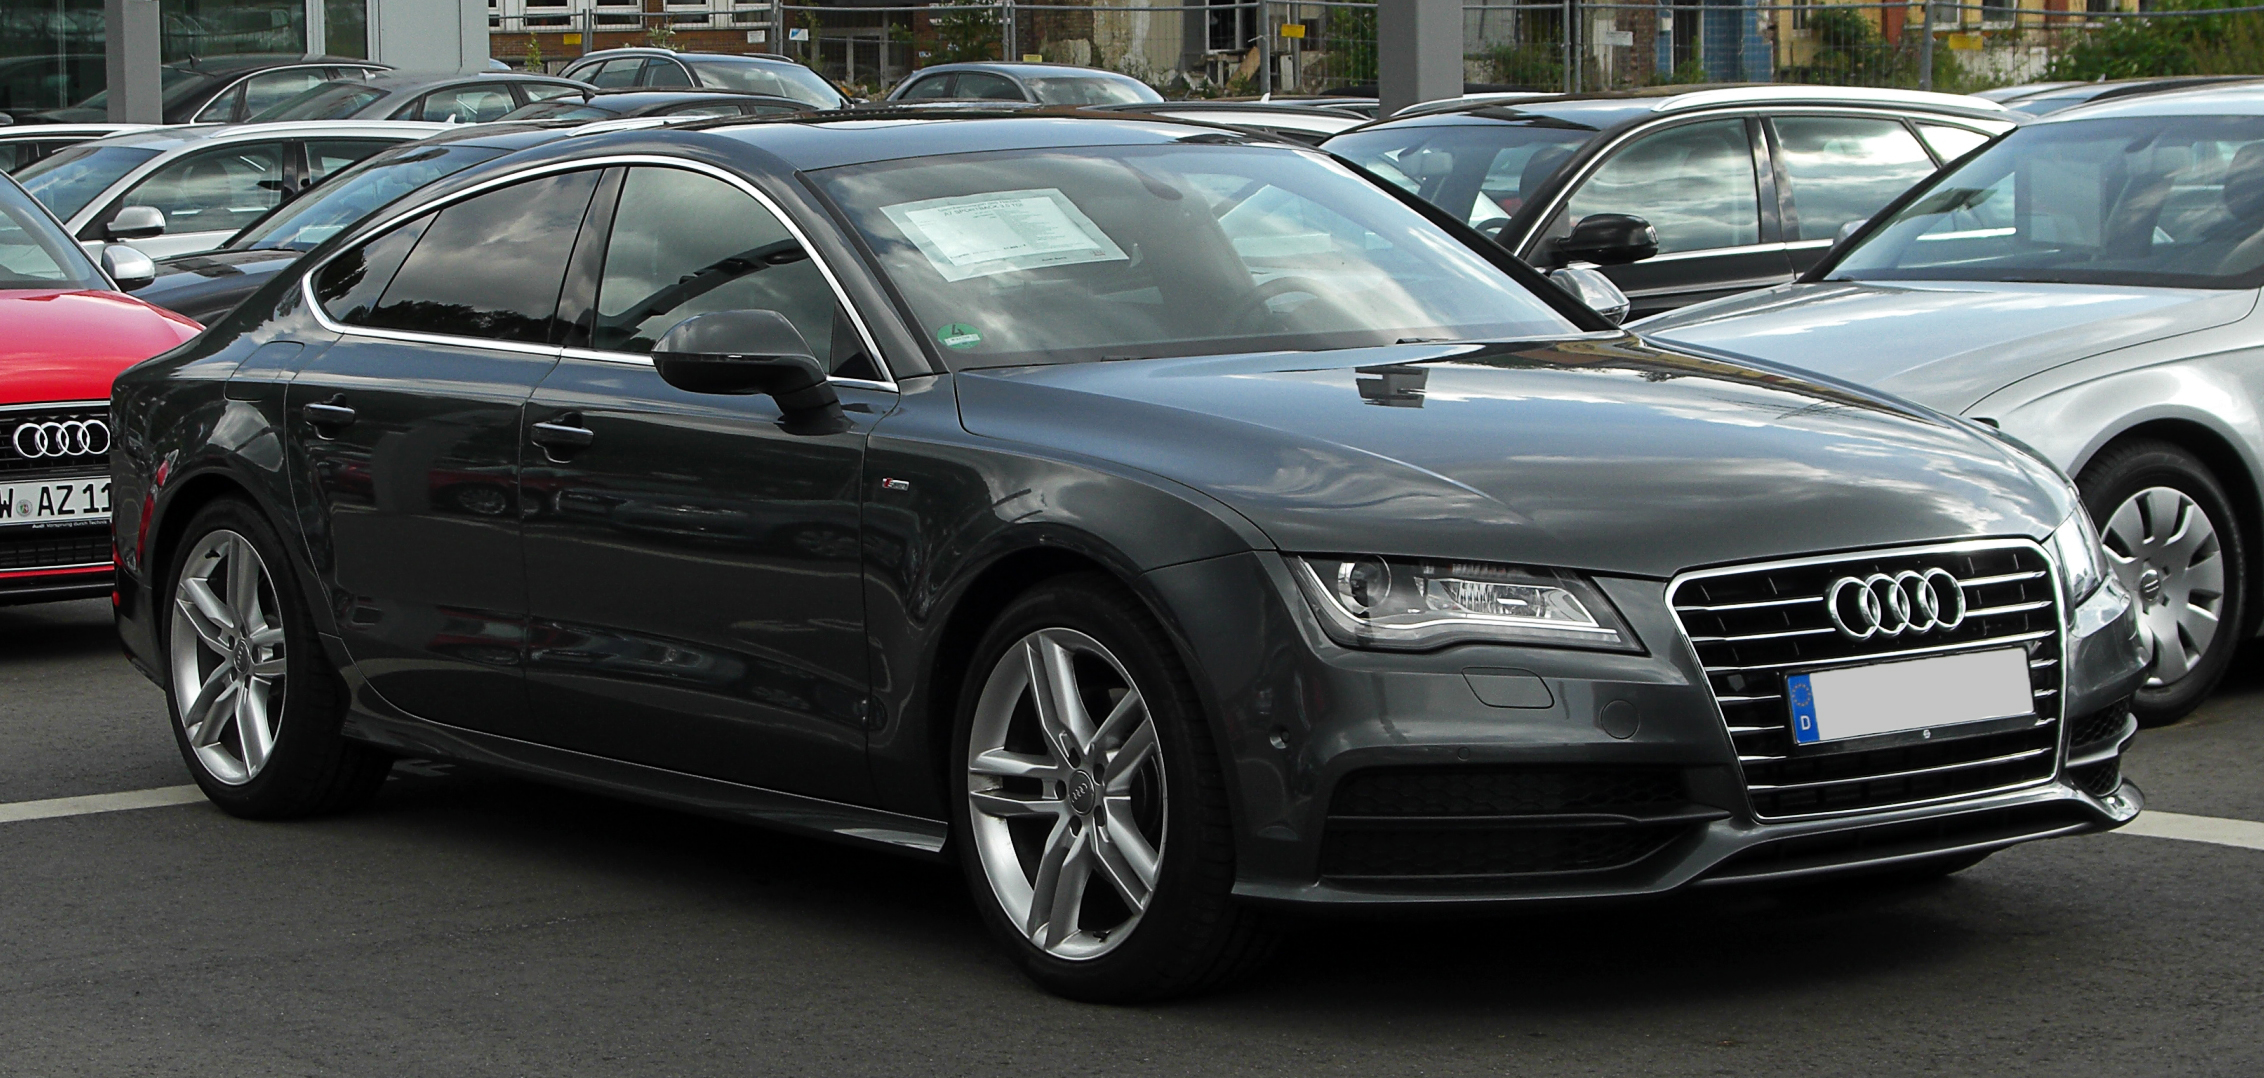 file audi a7 sportback 3 0 tdi quattro s line frontansicht 15 mai 2011. Black Bedroom Furniture Sets. Home Design Ideas